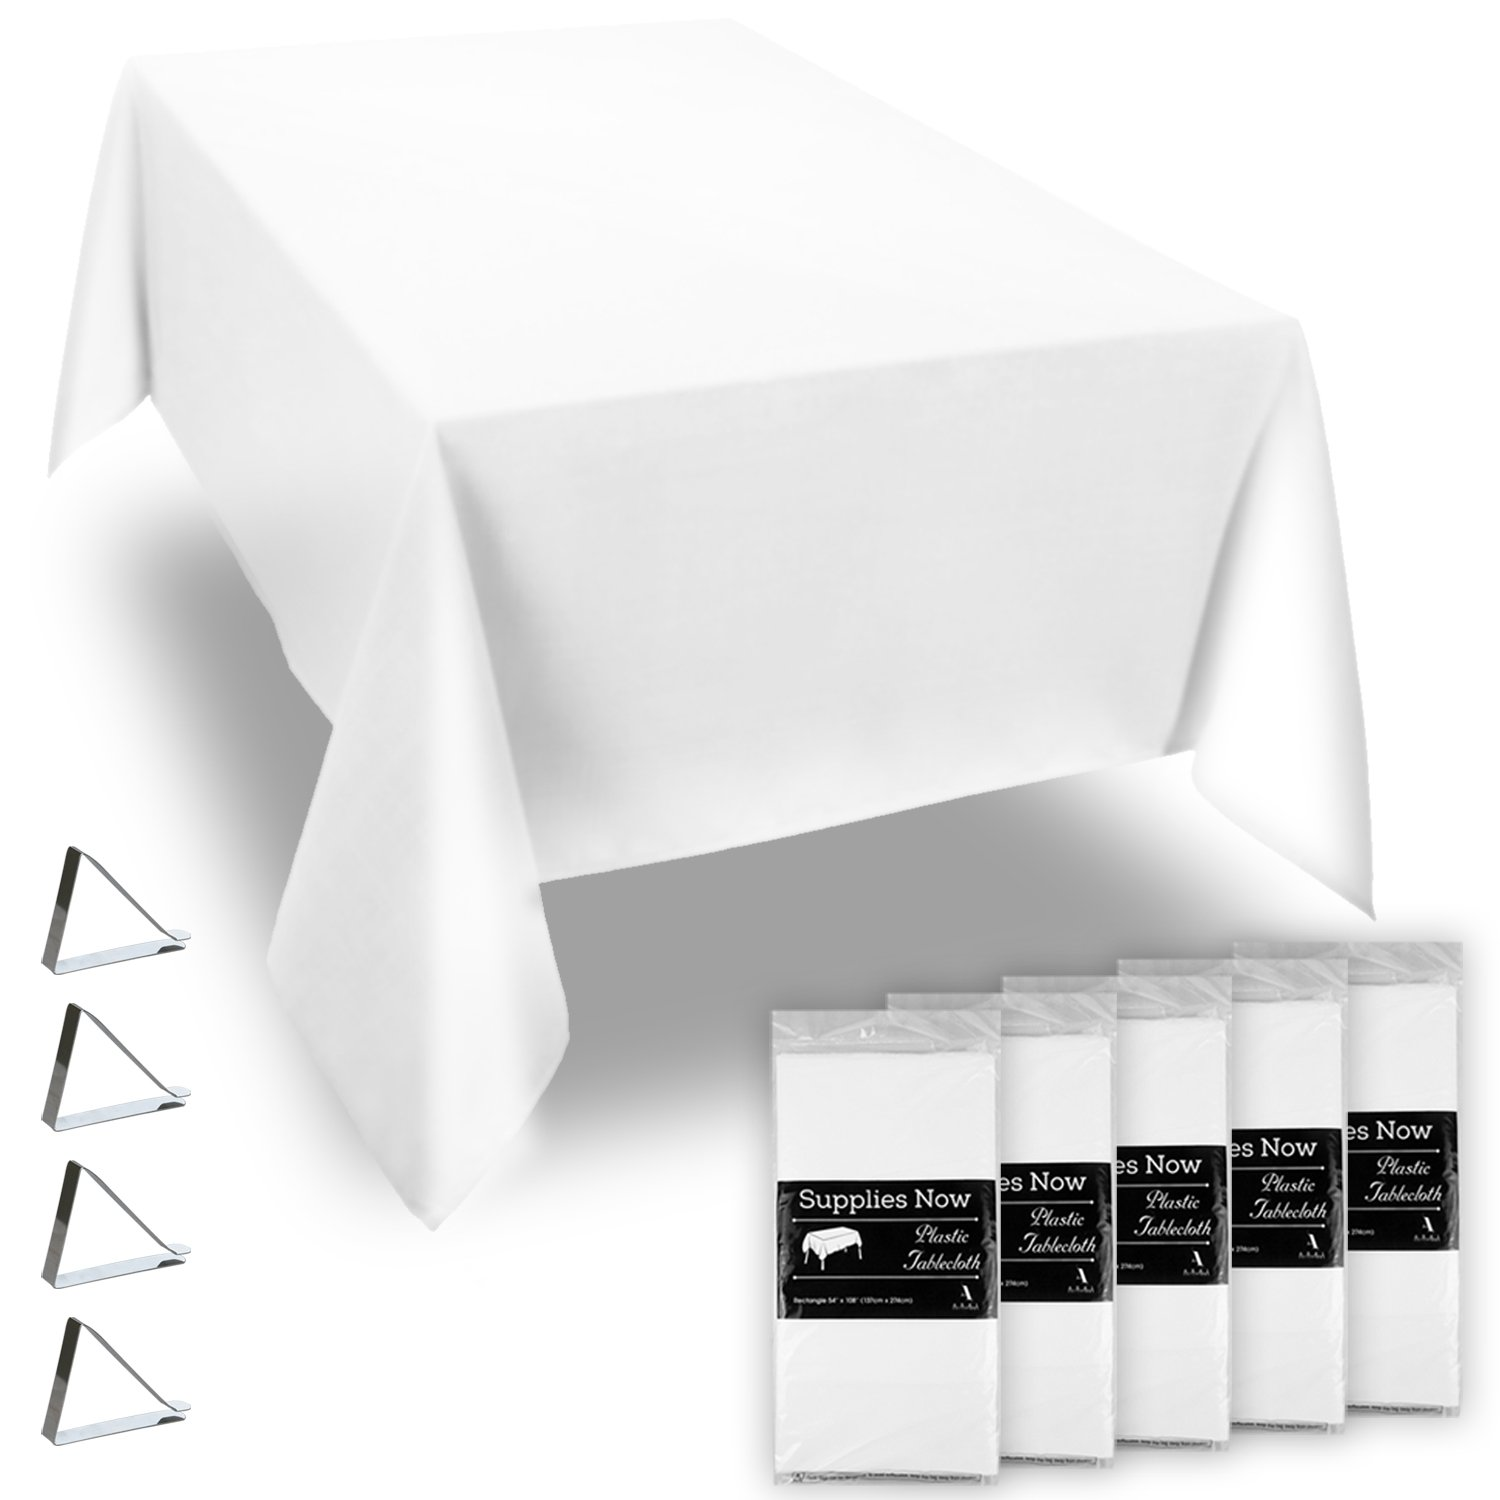 """White 54"""" x 108"""" Disposable Plastic Tablecloths Set Includes 5 Plastic Table Covers and 20 Stainless Steel Clips (25 Pieces)"""